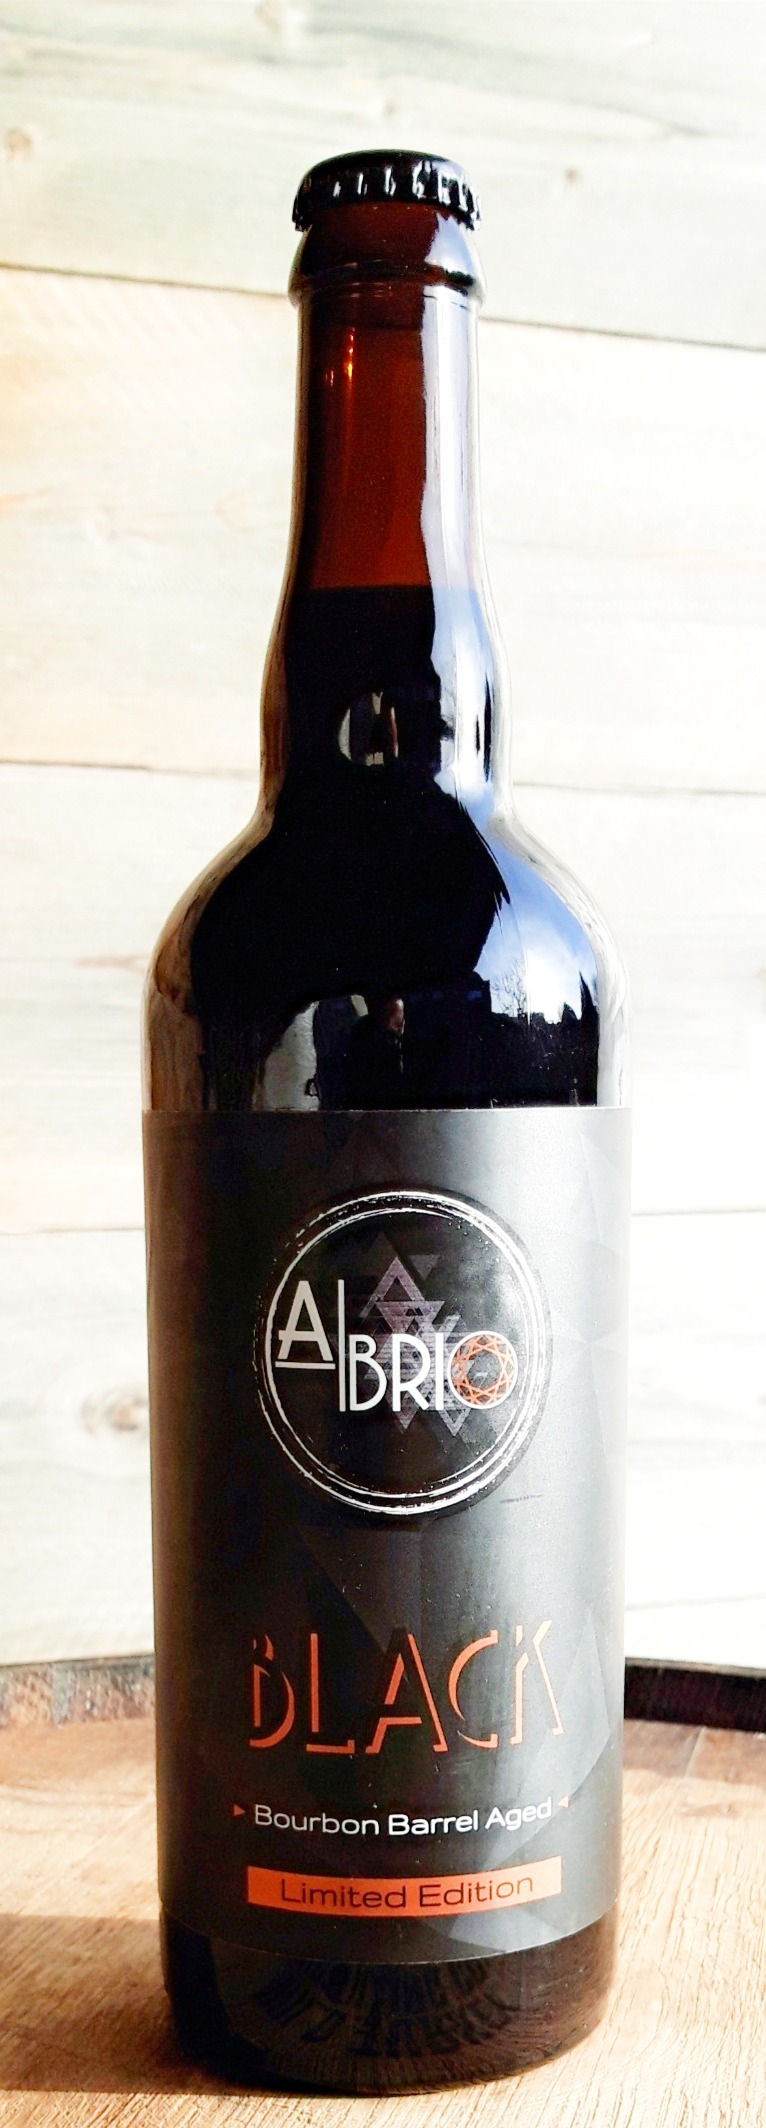 ABRIO BLACK Bourbon Barrel Aged